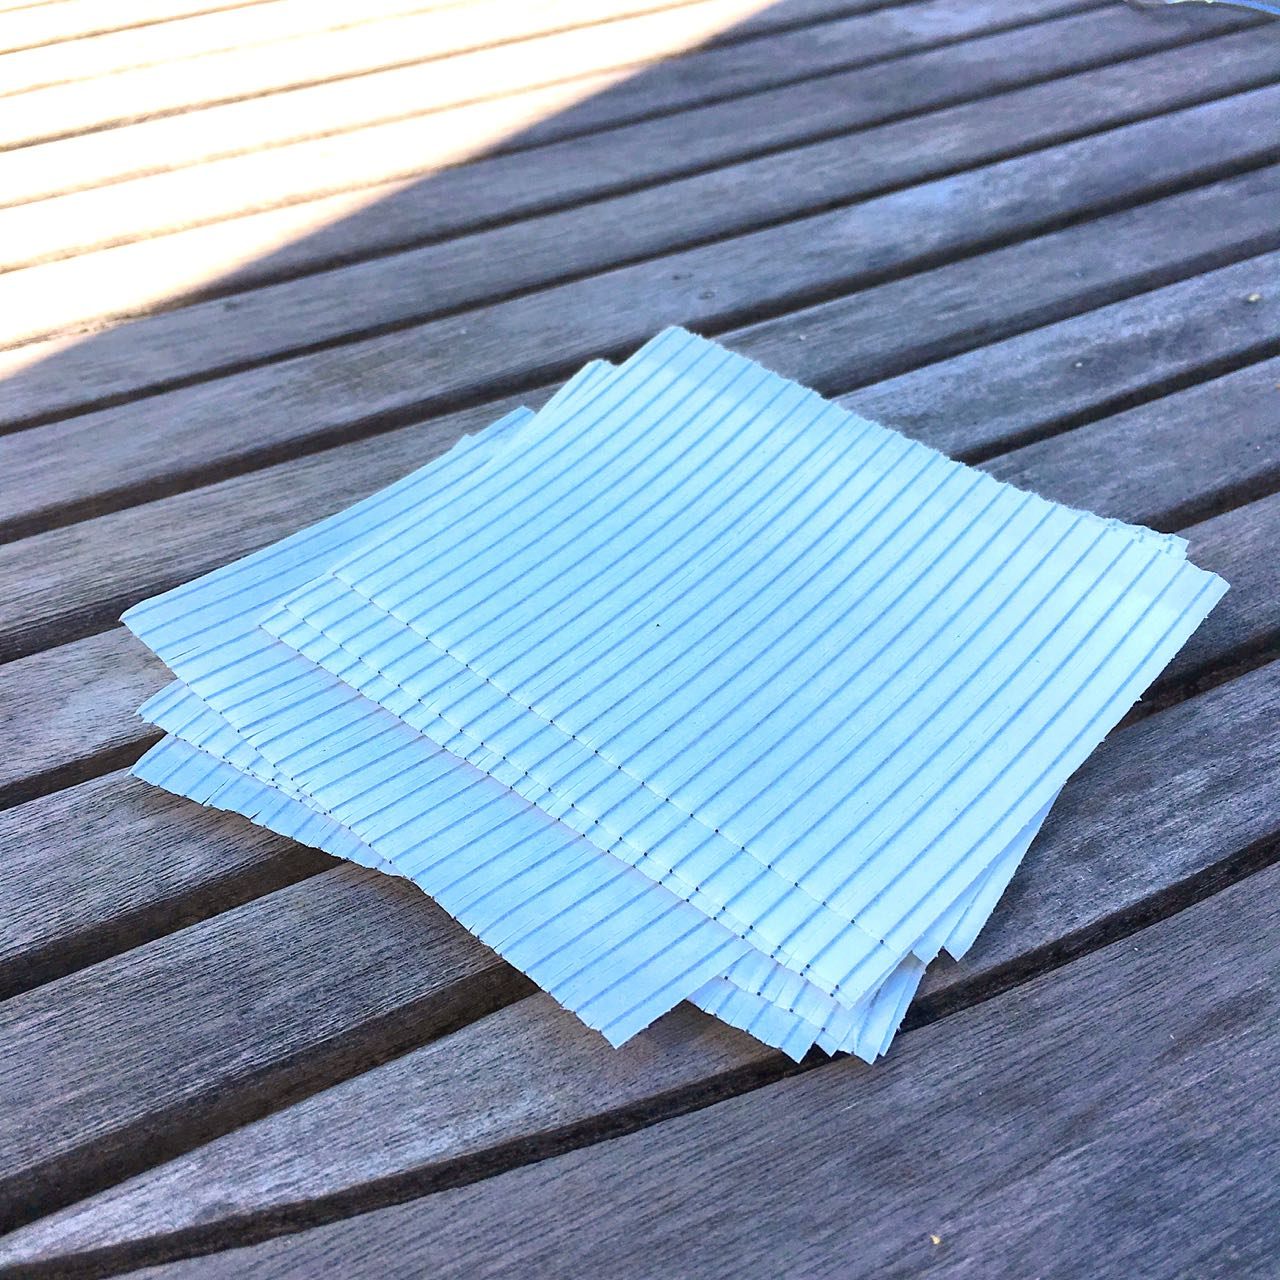 The essential ingredient for us was these simple freezer bag ties!